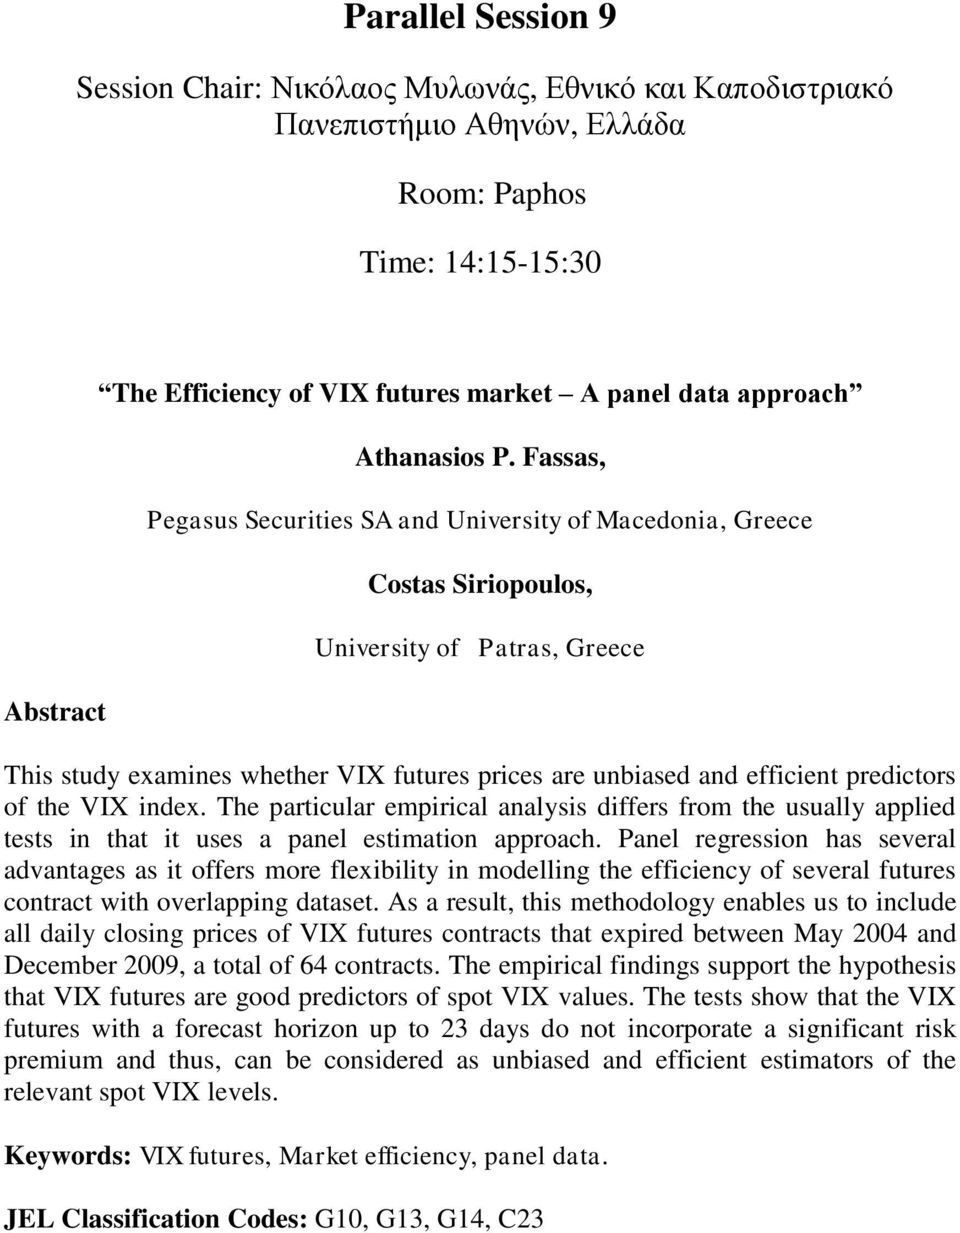 Fassas, Pegasus Securities SA and University of Macedonia, Greece Costas Siriopoulos, University of Patras, Greece This study examines whether VIX futures prices are unbiased and efficient predictors